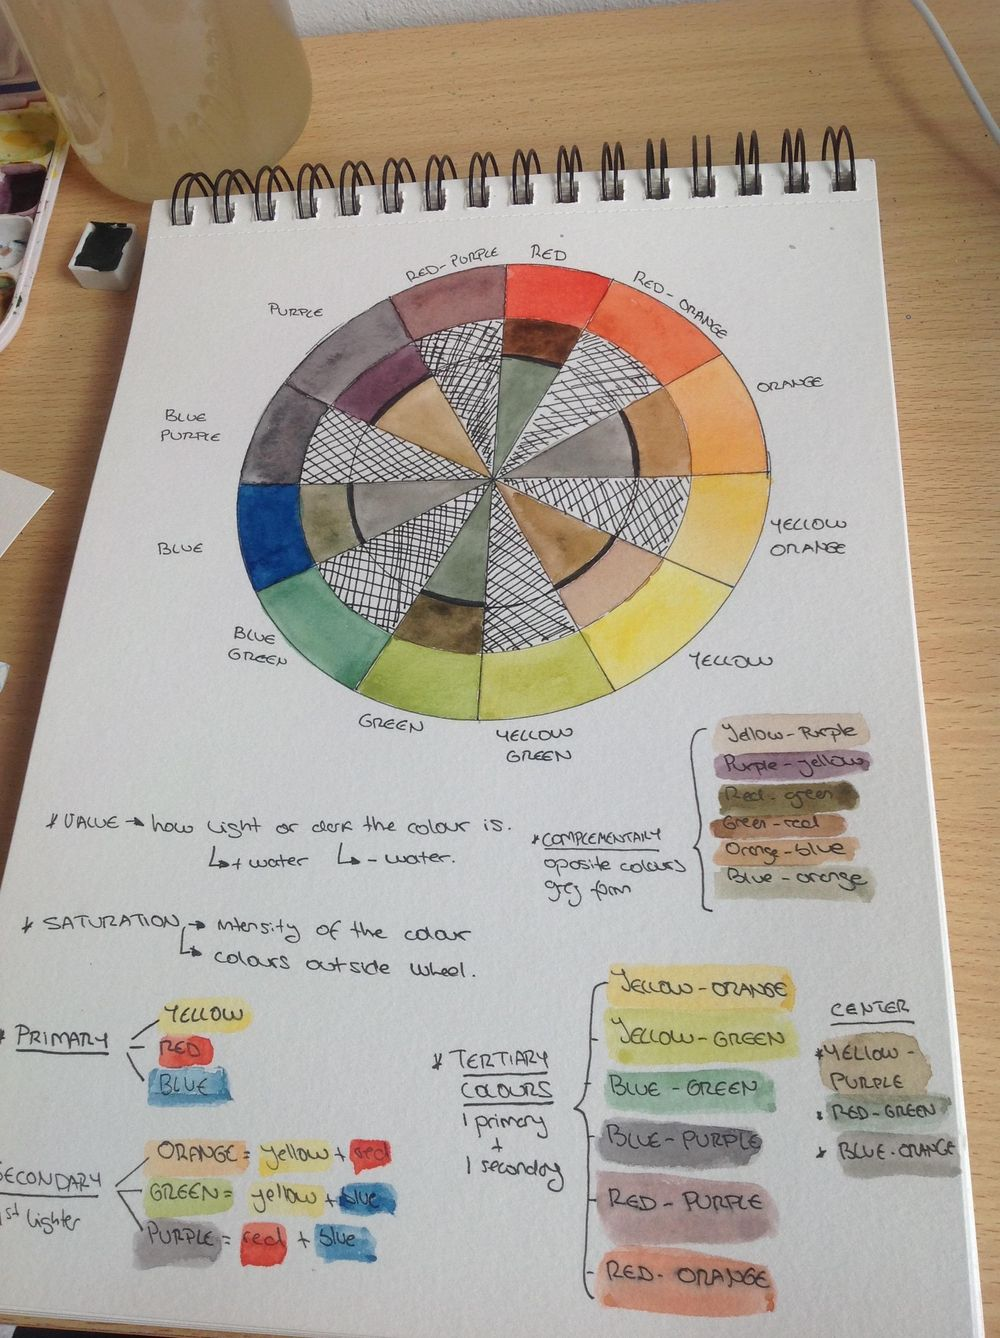 Colour wheel - image 1 - student project